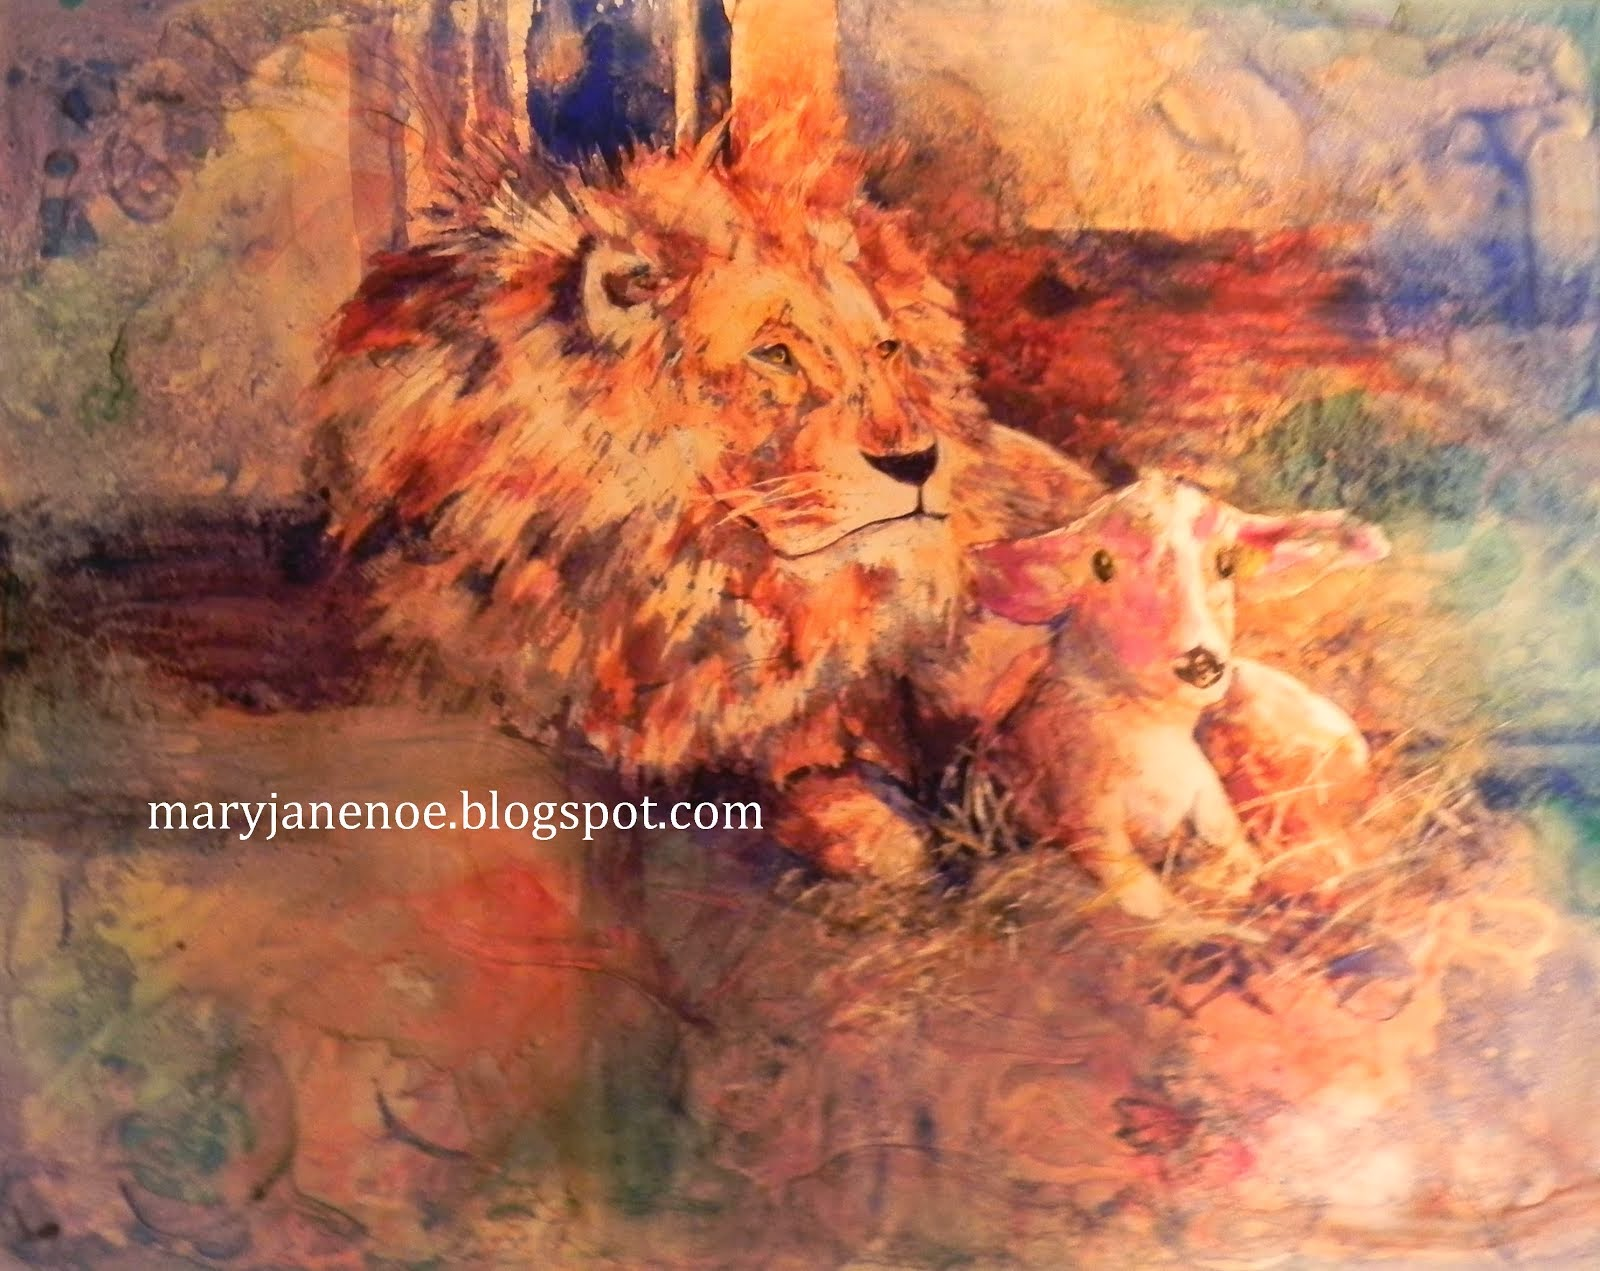 Lion and Lamb #1